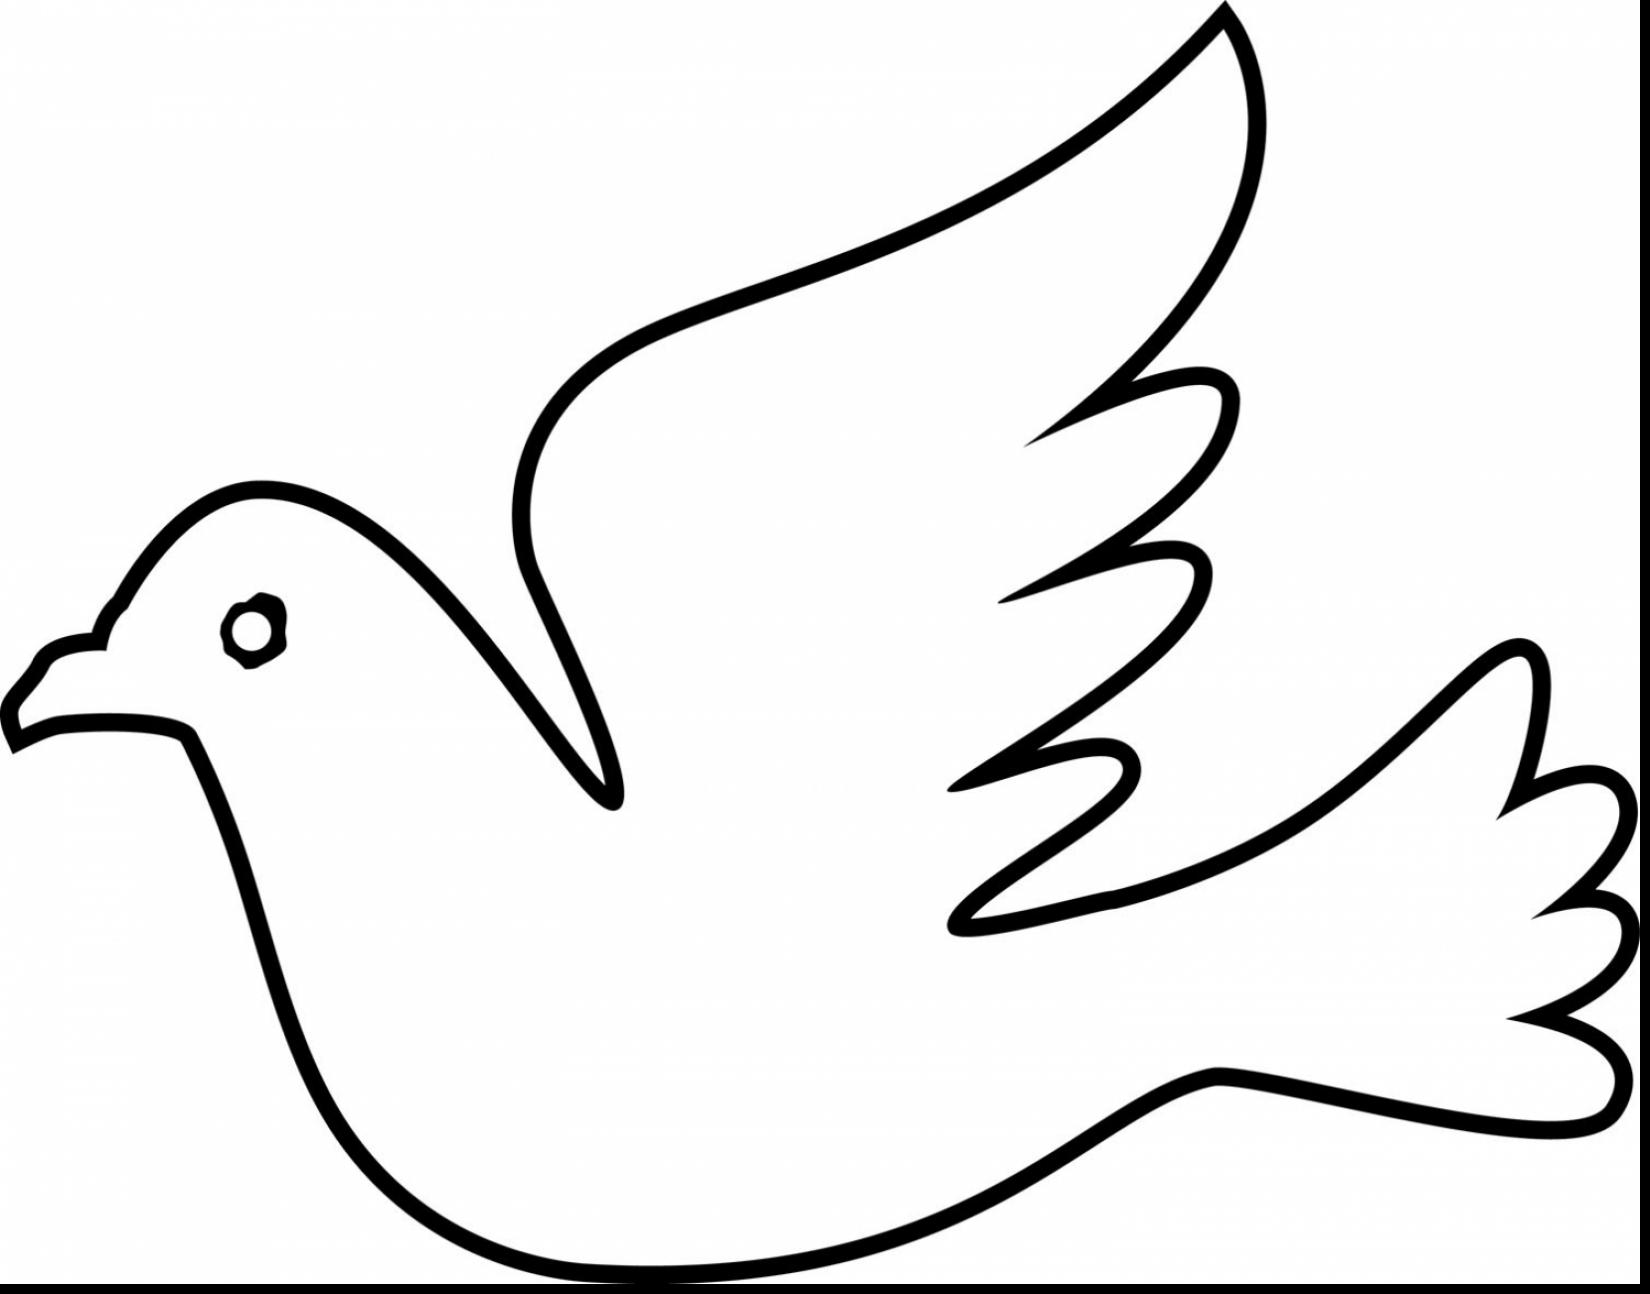 1650x1294 Marvelous Design Dove Coloring Page Mourning With To Color Dove